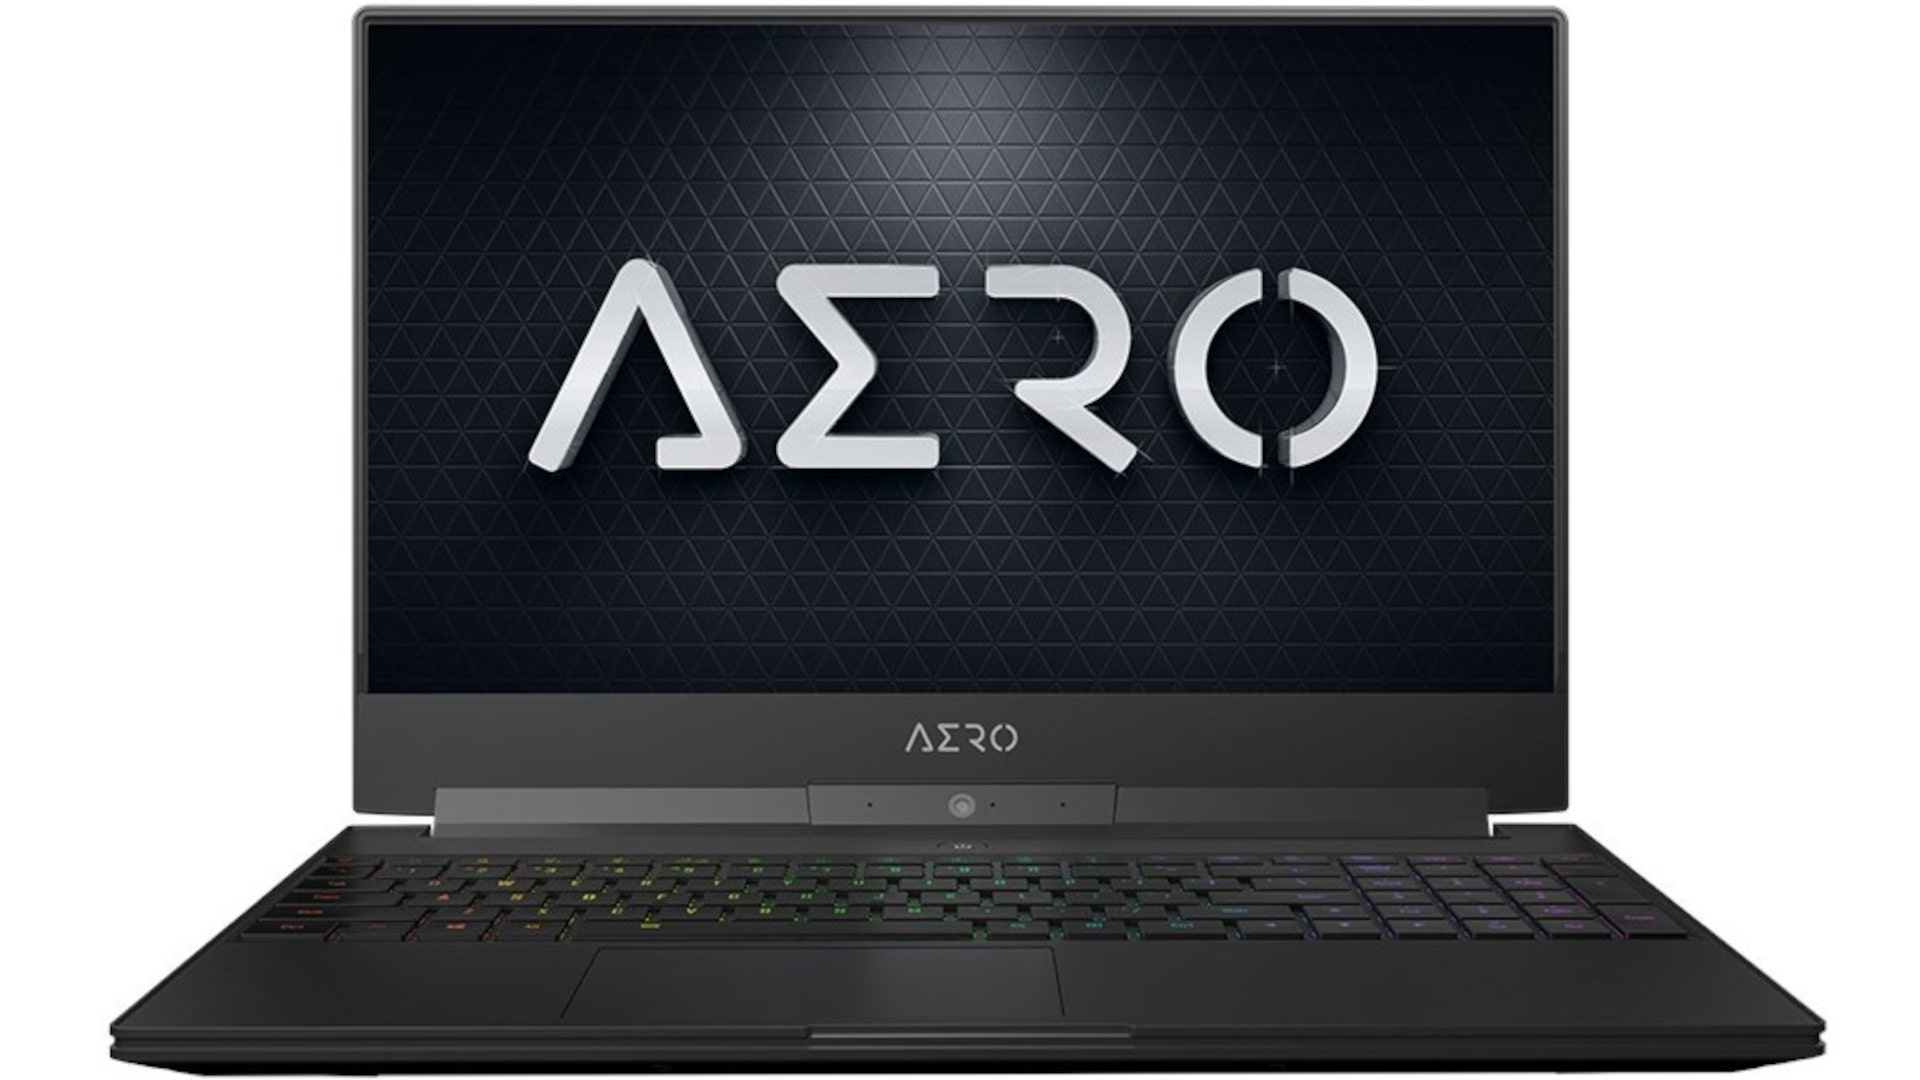 Gigabyte Aero 15 X9 Laptop Review